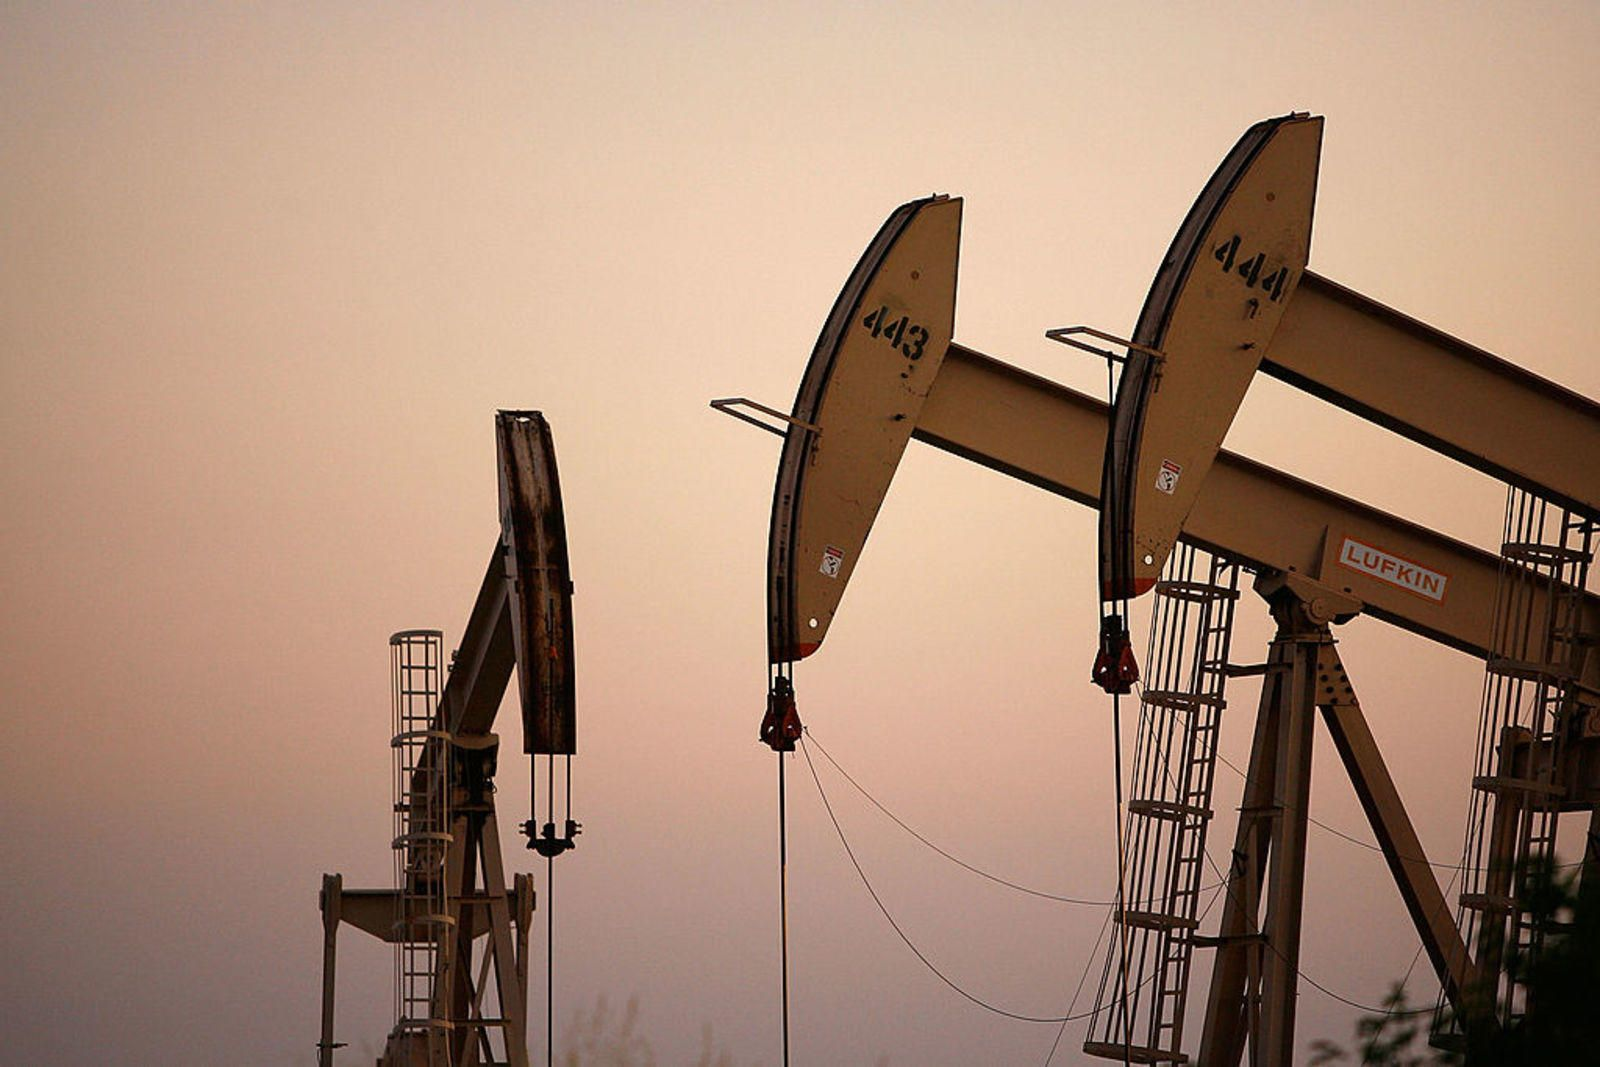 Falling: Oil Prices Keep Diving As Demand Disappears